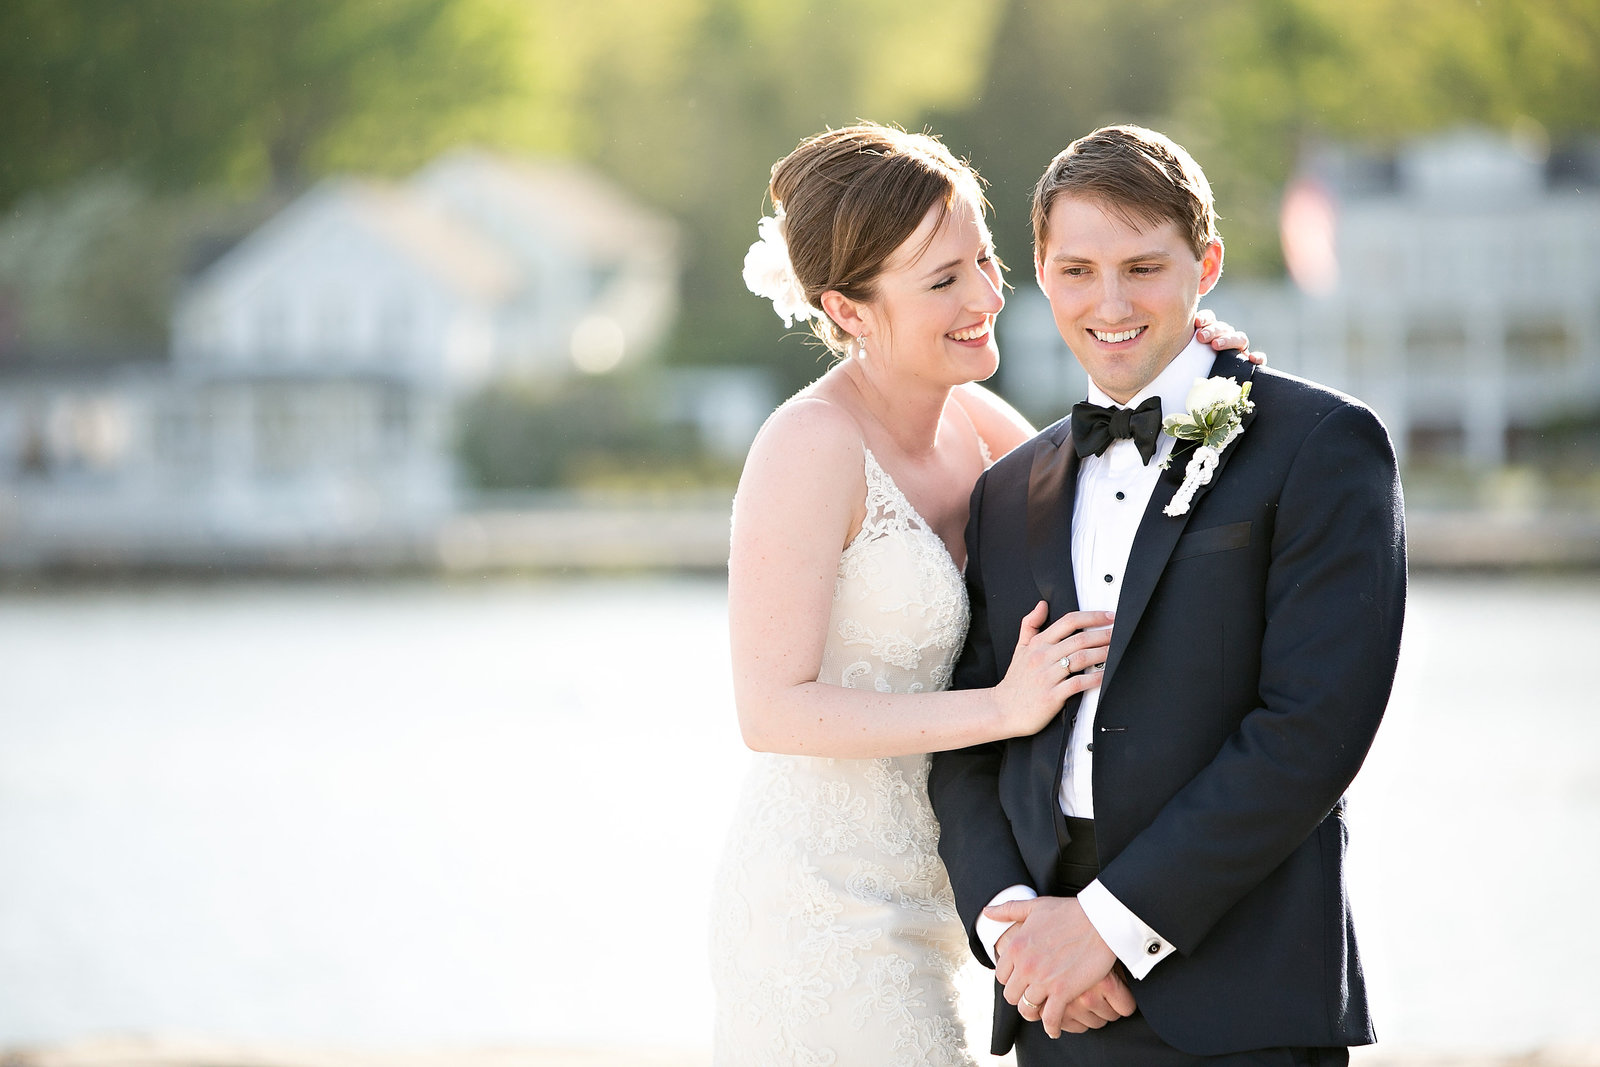 latitude-41-mystic-wedding-photos-4678